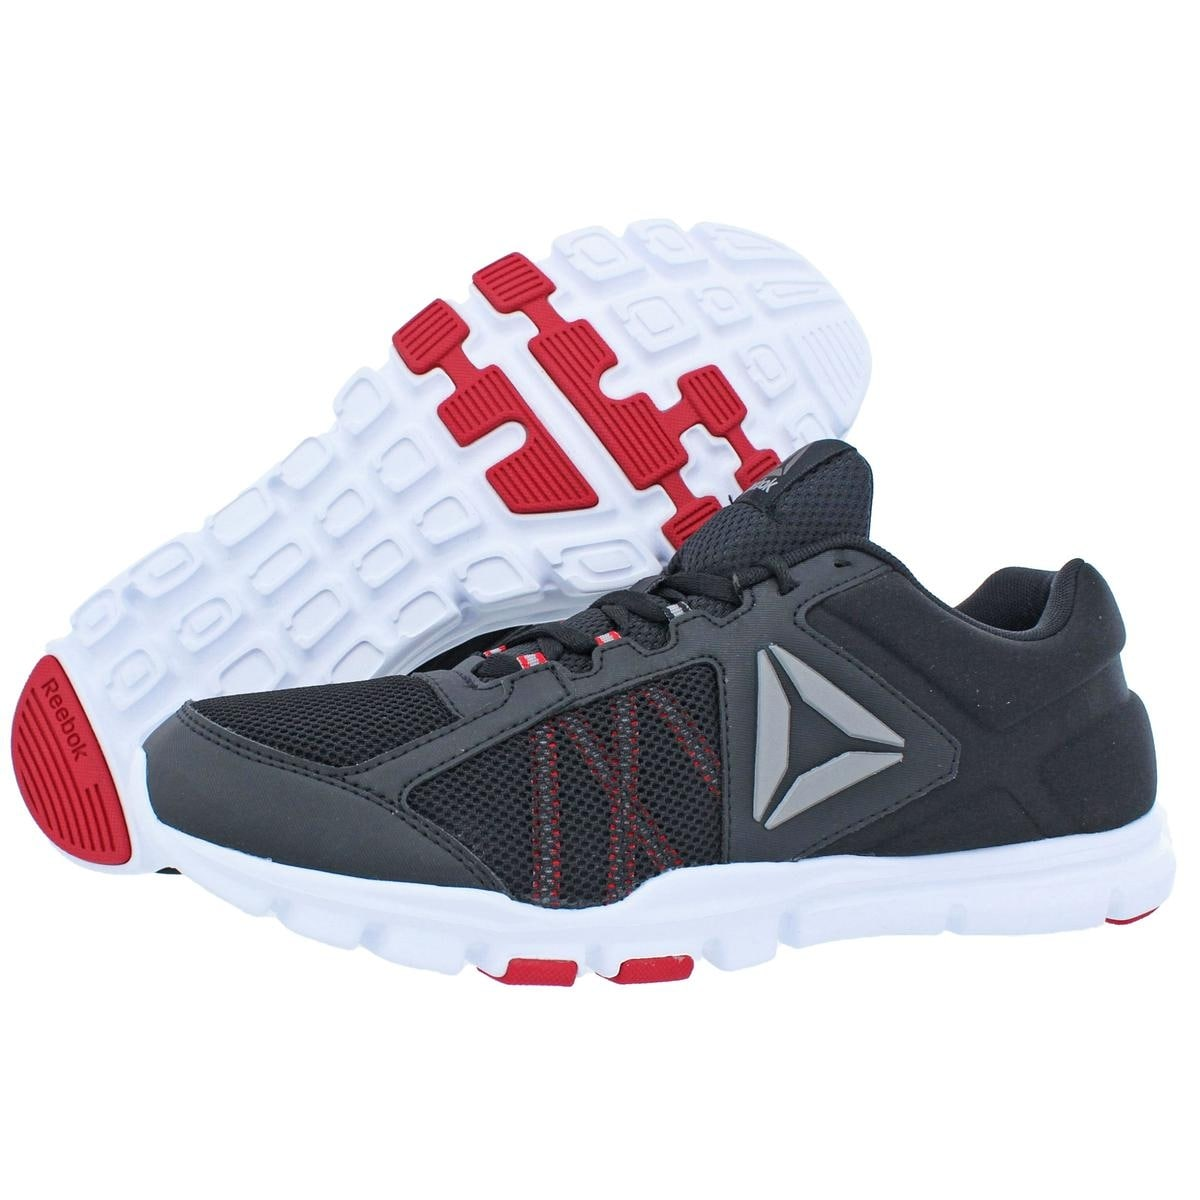 e9274c3bb2b25f Shop Reebok Mens Yourflex Train 9.0 MT Trainers Memory Tech Comfortable -  Free Shipping On Orders Over  45 - Overstock - 22727155